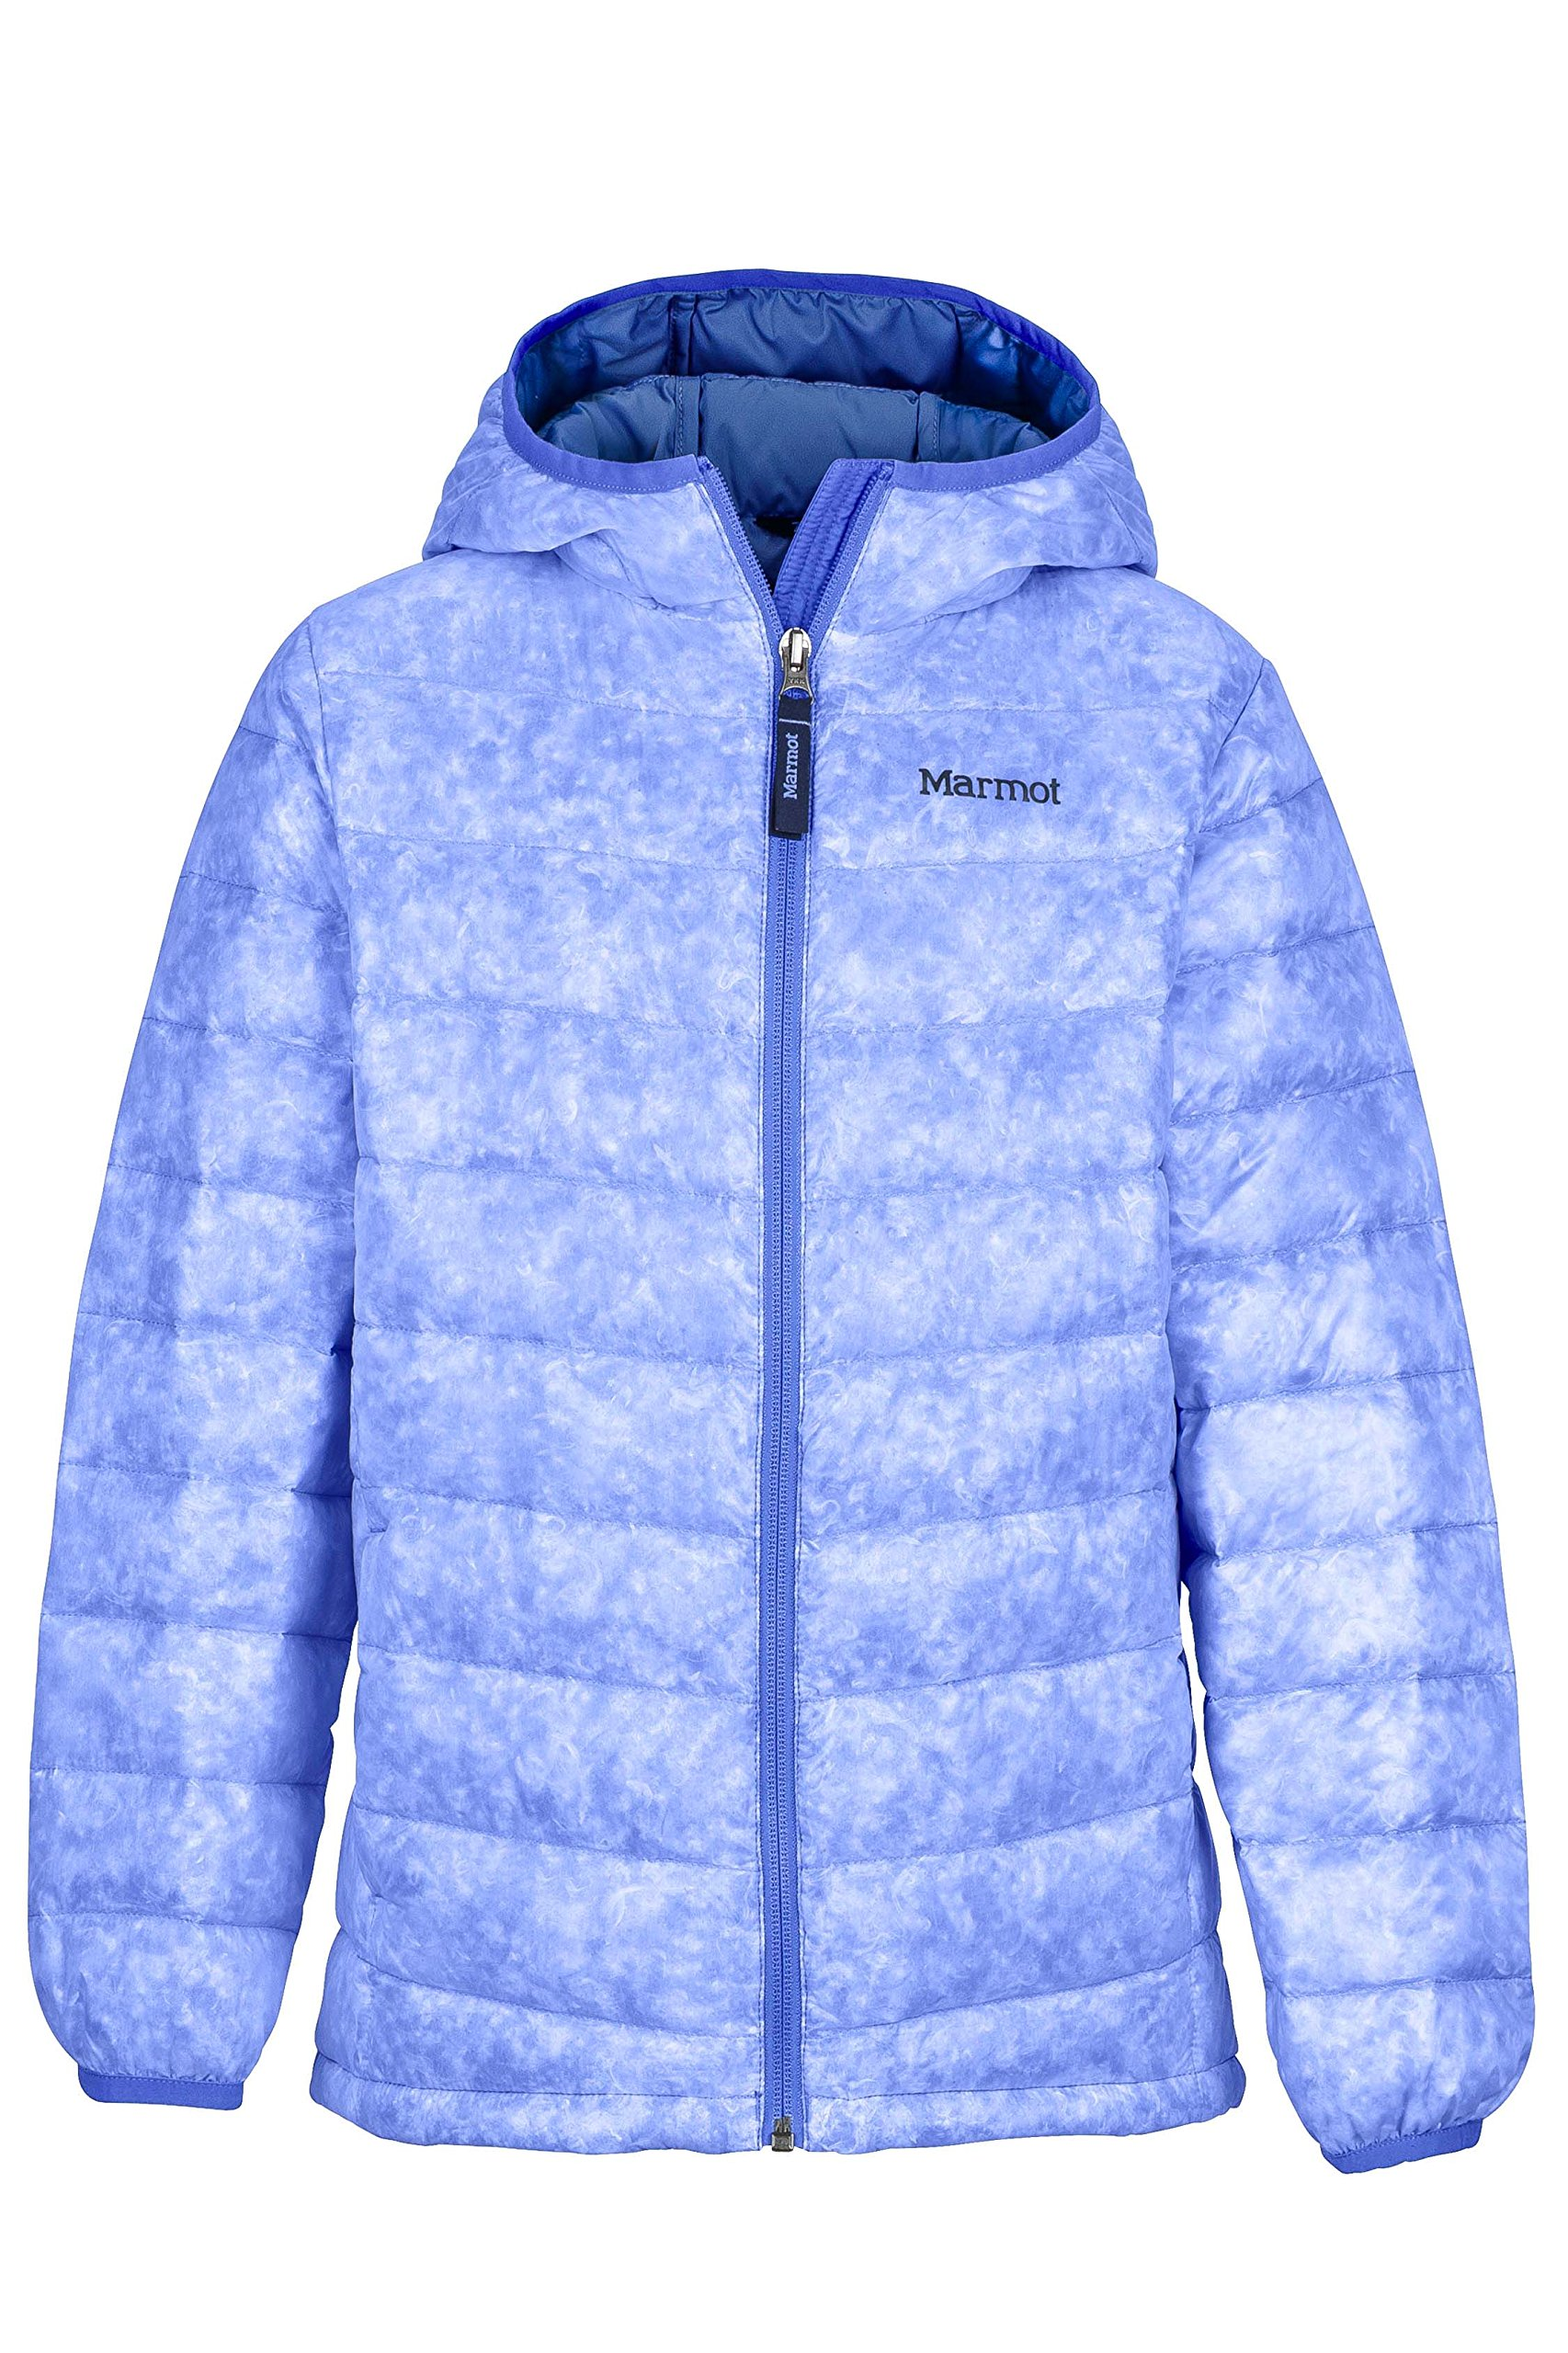 Marmot Nika Girls' Down Puffer Jacket, Fill Power 550, Lilac, Large by Marmot